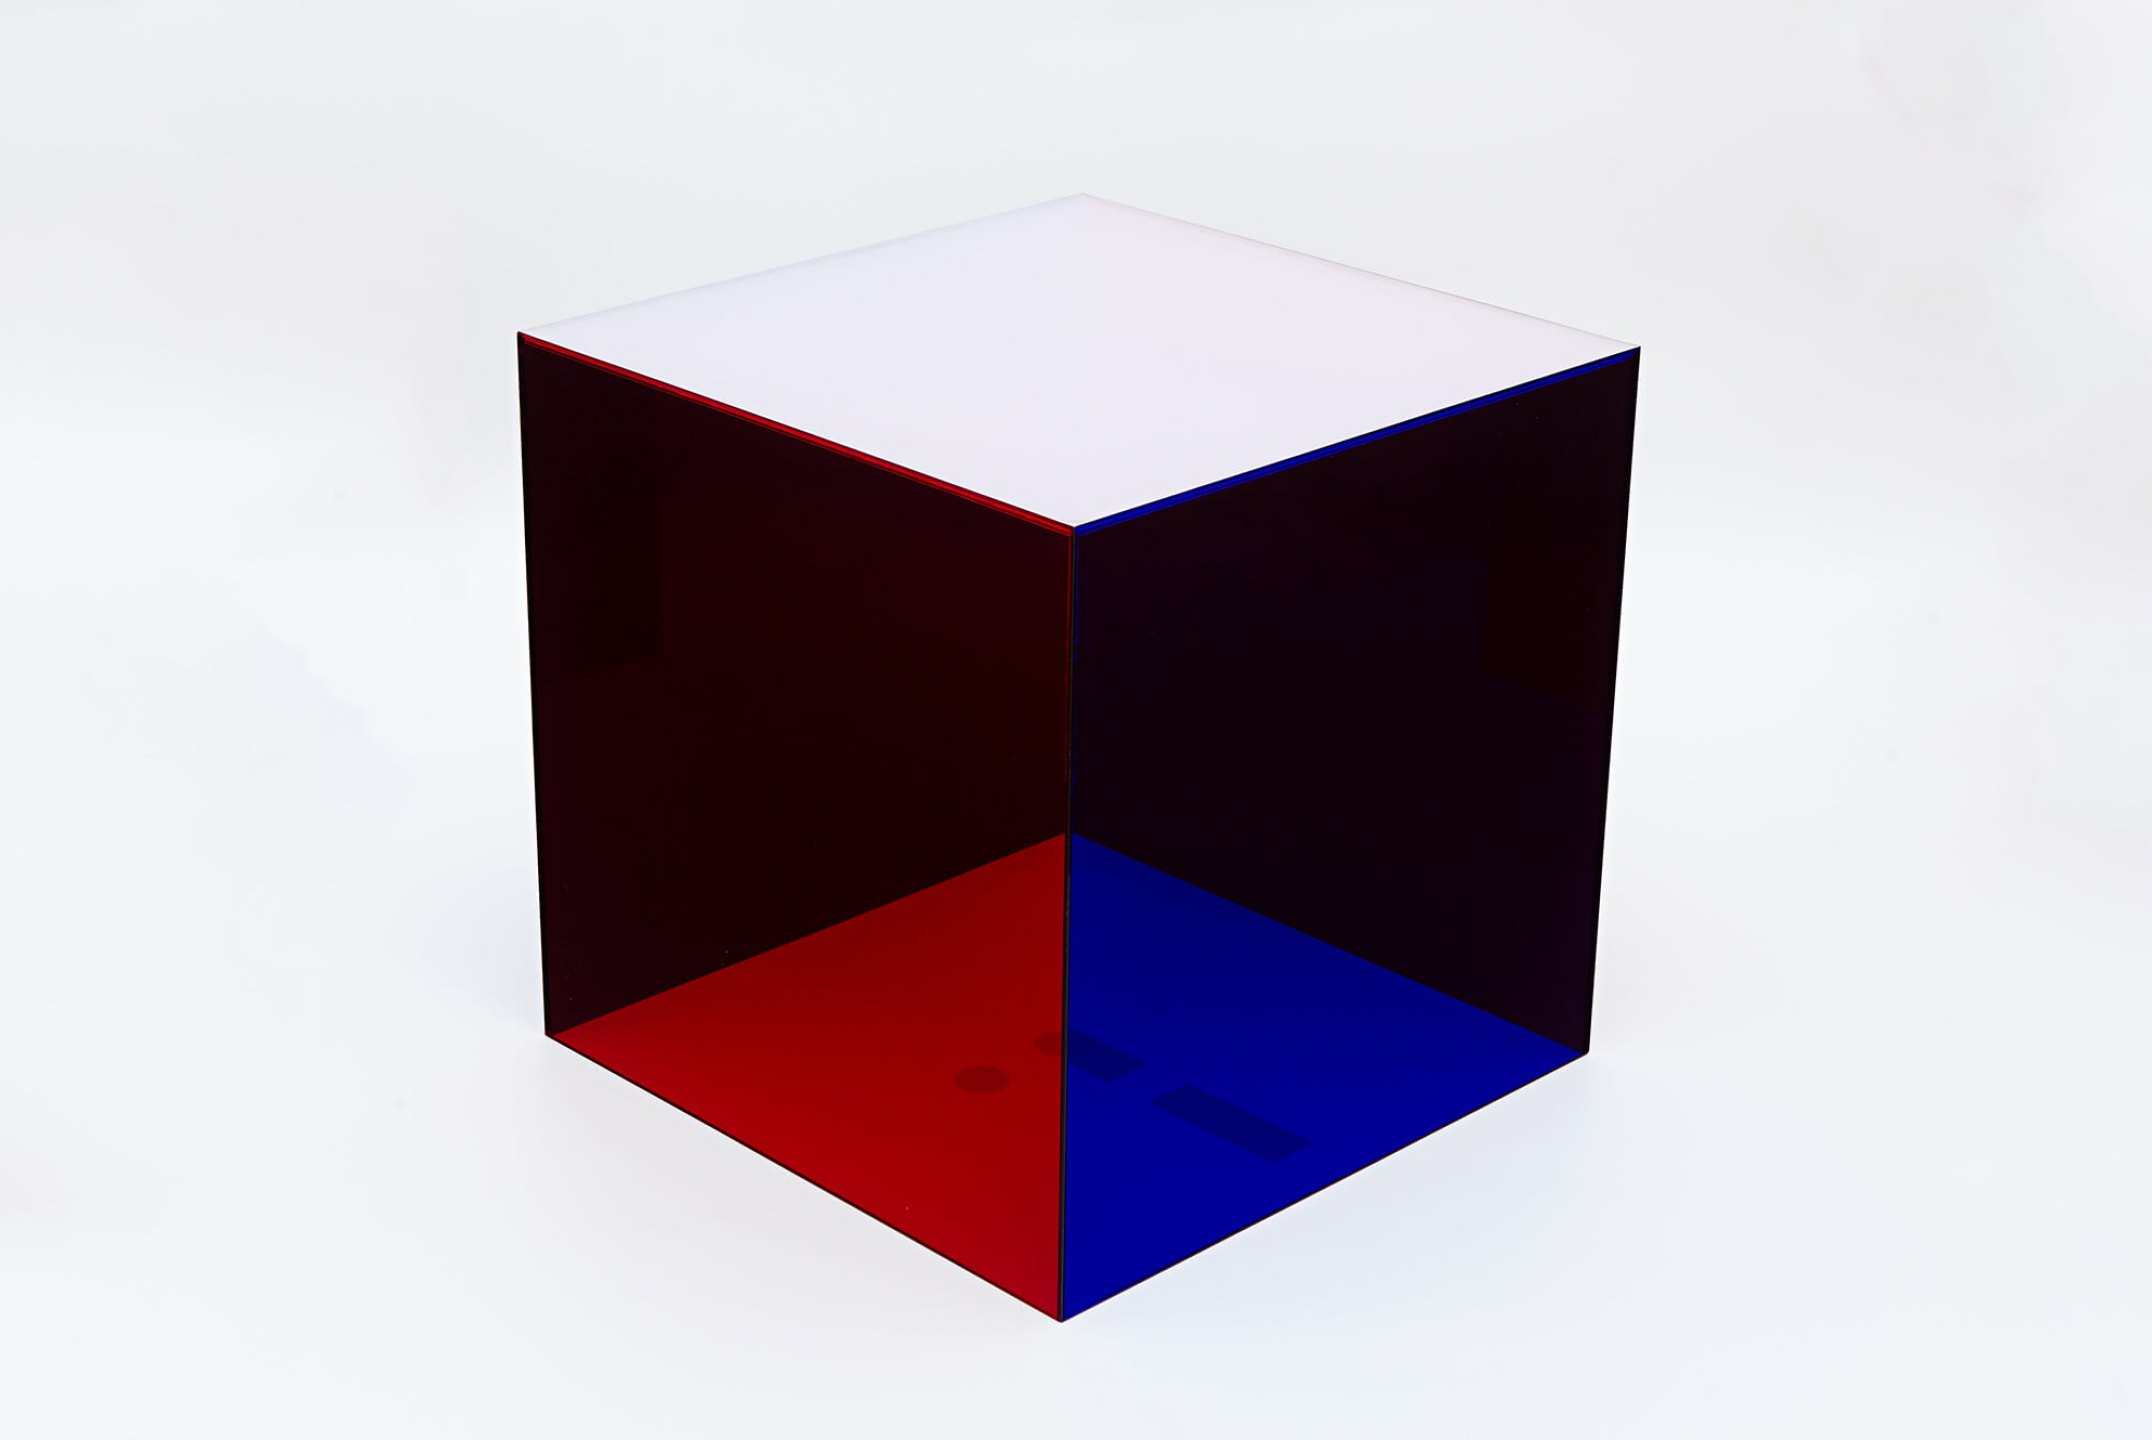 Roberto Winter, <em>Tríptico</em>, 2011, plexiglas cube positioned on inkjet print on paper, 50 × 50 × 50 cm - Mendes Wood DM